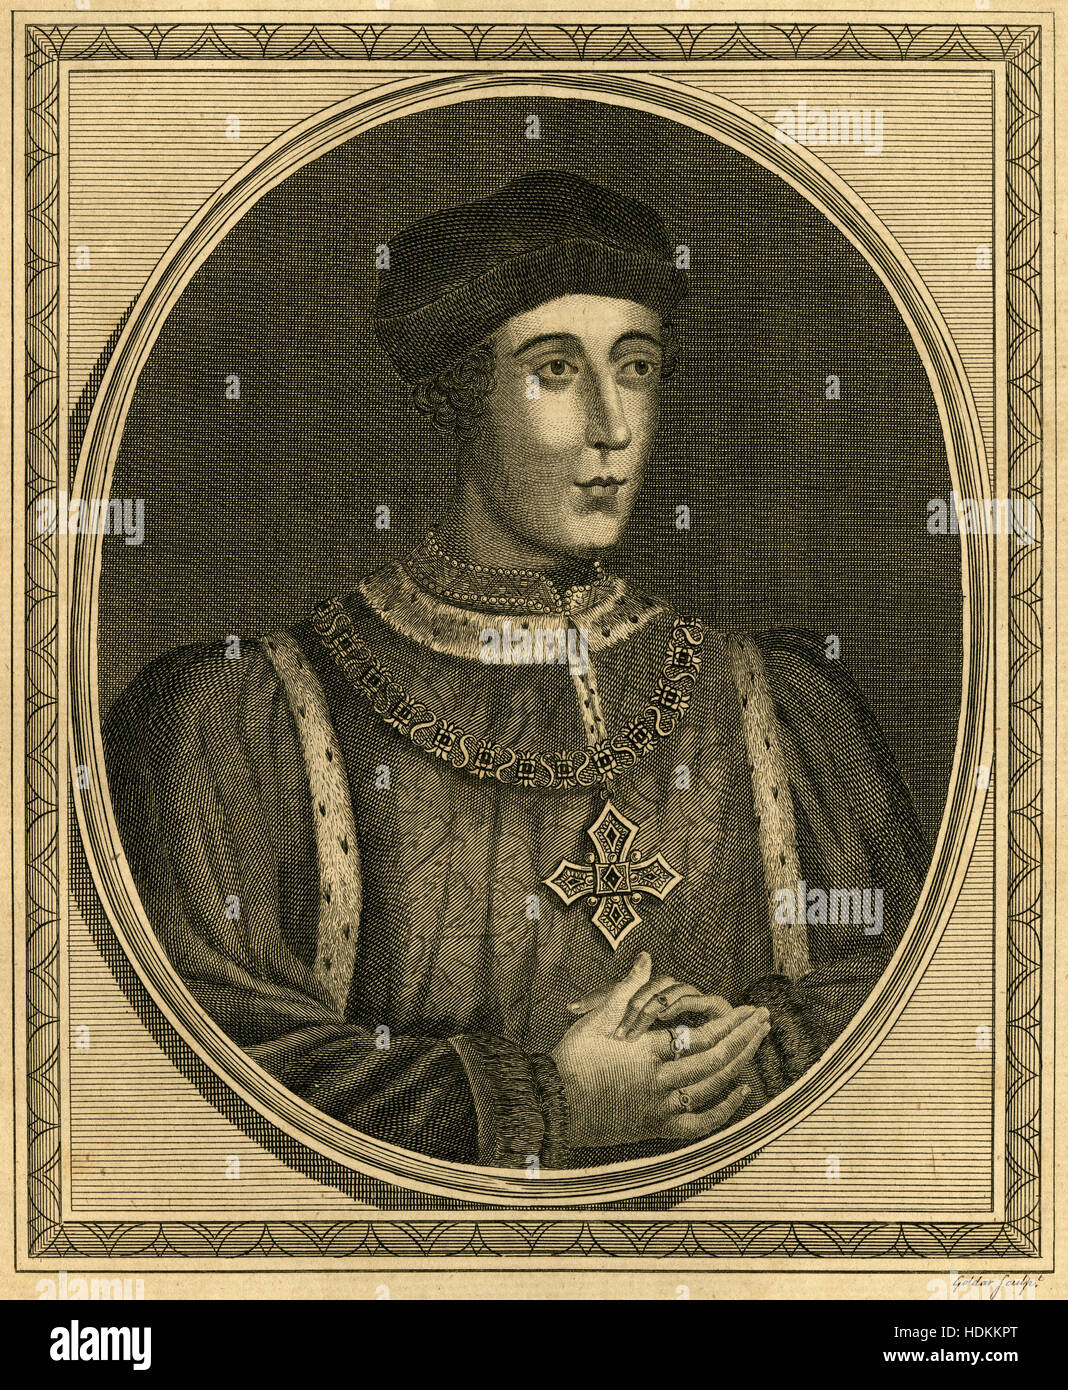 Antique 1787 engraving, King Henry VI. Henry VI (1421-1471) was King of England from 1422 to 1461 and again from - Stock Image